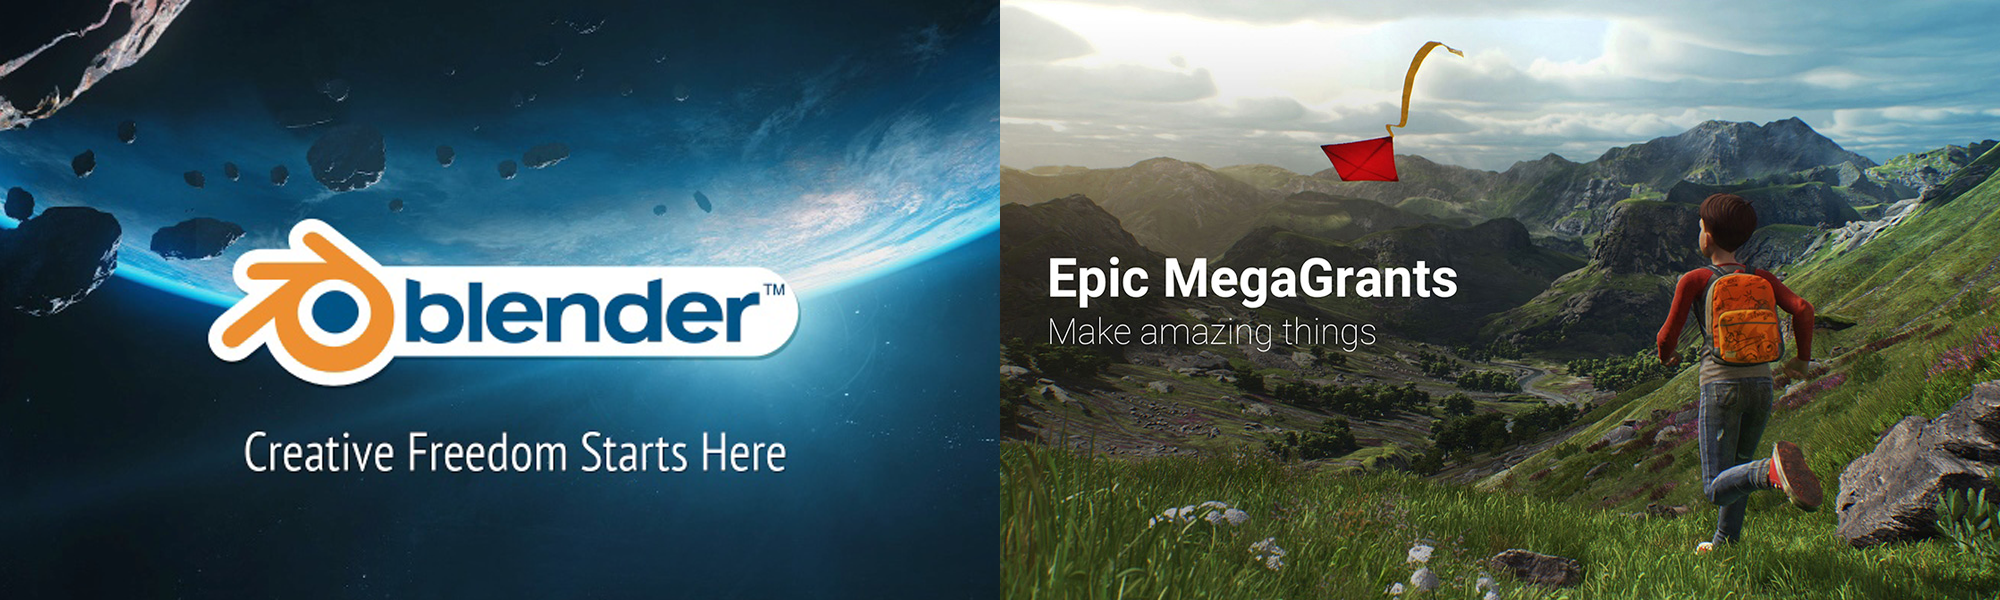 EpicMegaGrants, BLENDER, Epic Mega Grants, Epic, unreal engine, animación, 3d,